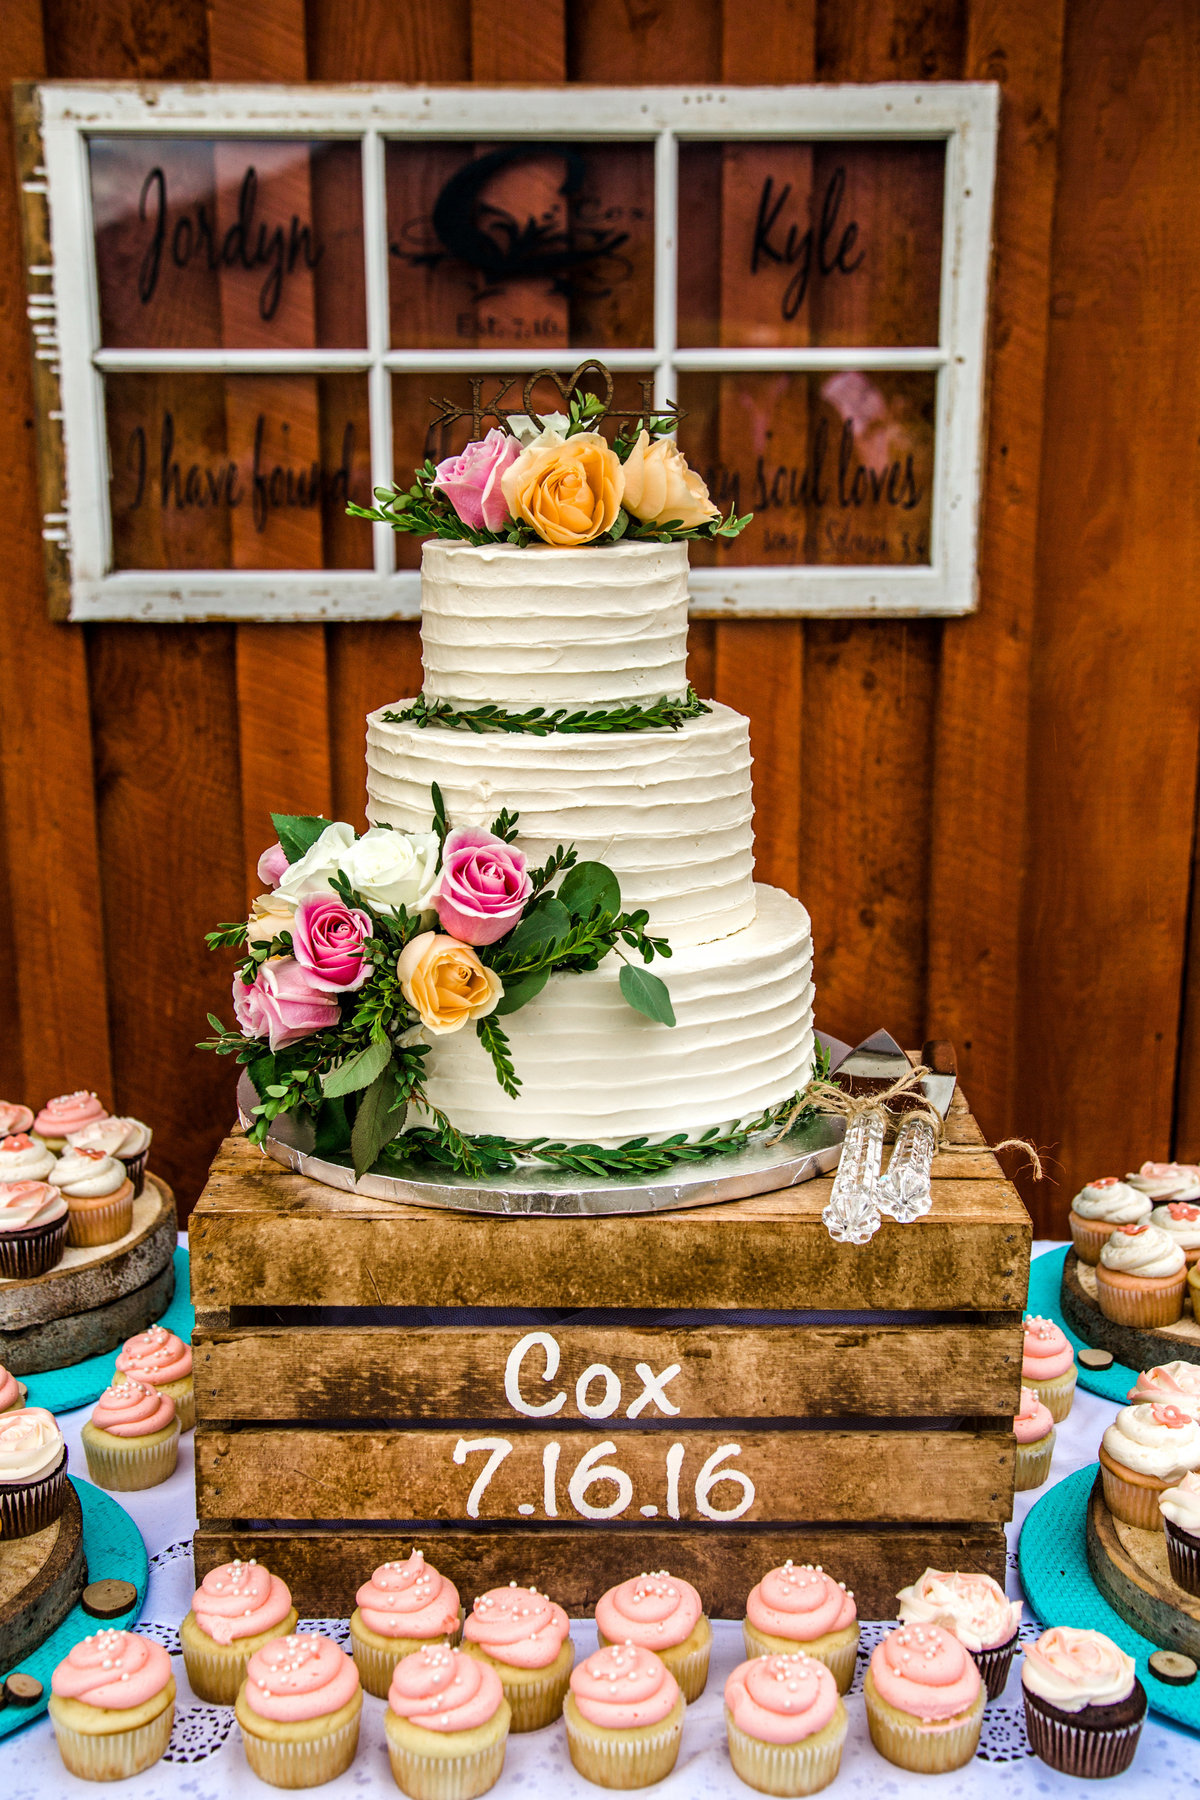 Kyle Jordyn Cox July 16th 2016-Reception-0004